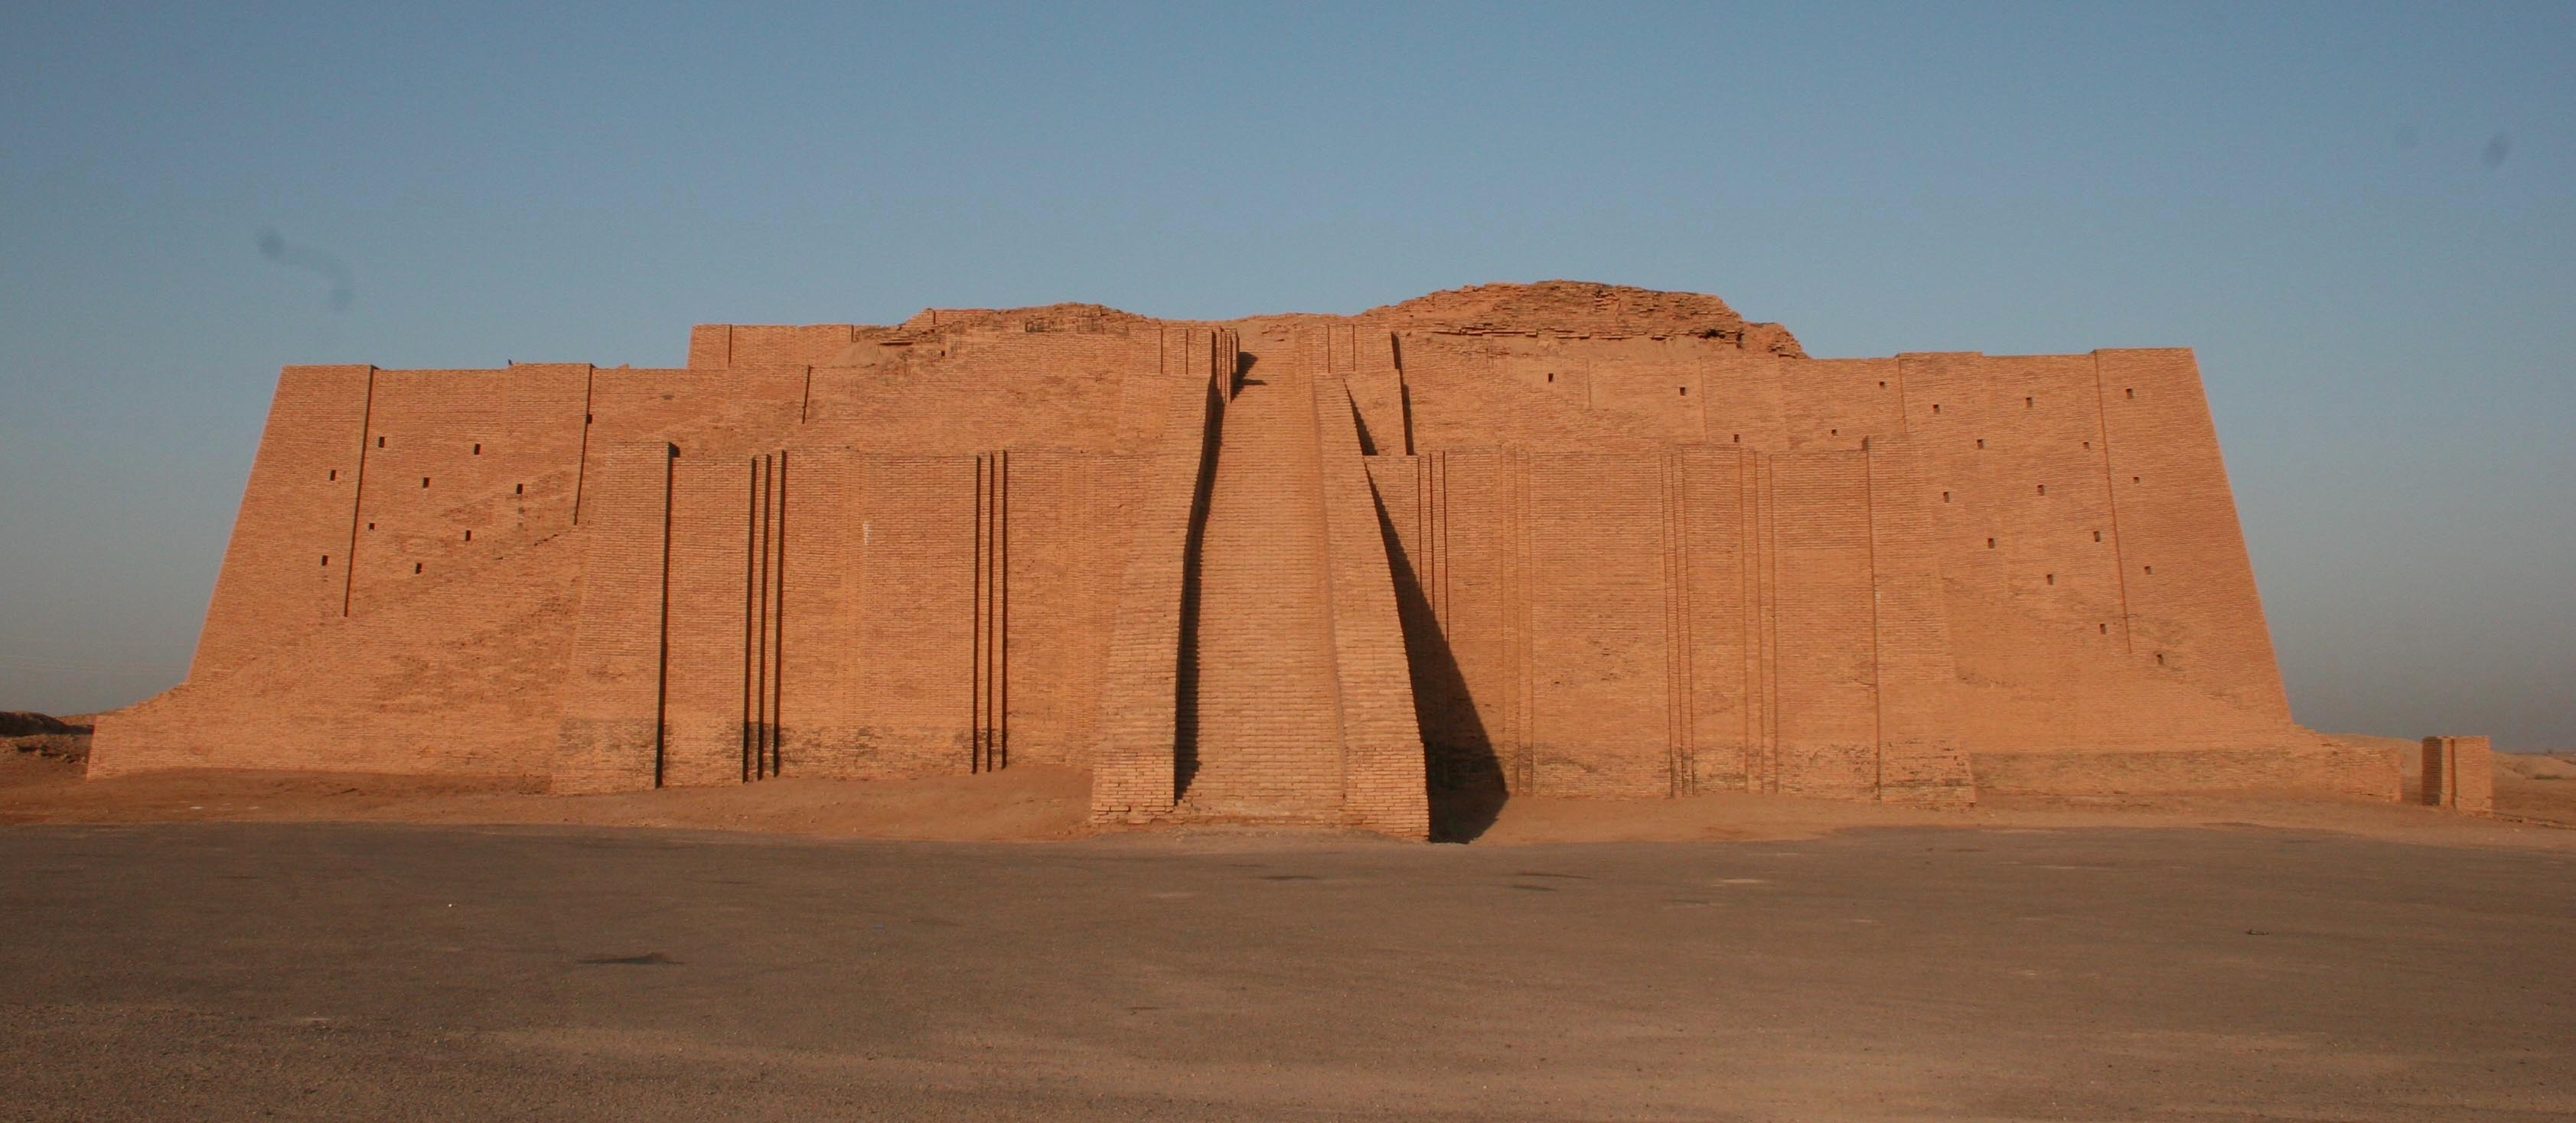 "The Great Ziggurat of Ur | Located in what is today the Dhi Qar Province of Iraq, Sumerians originally built the ziggurat in the Third Dynasty of Ur (c. 2100 BCE). It has been restored several times since, including fairly recently in the 1980s. | Author: User ""Tla2006"" 